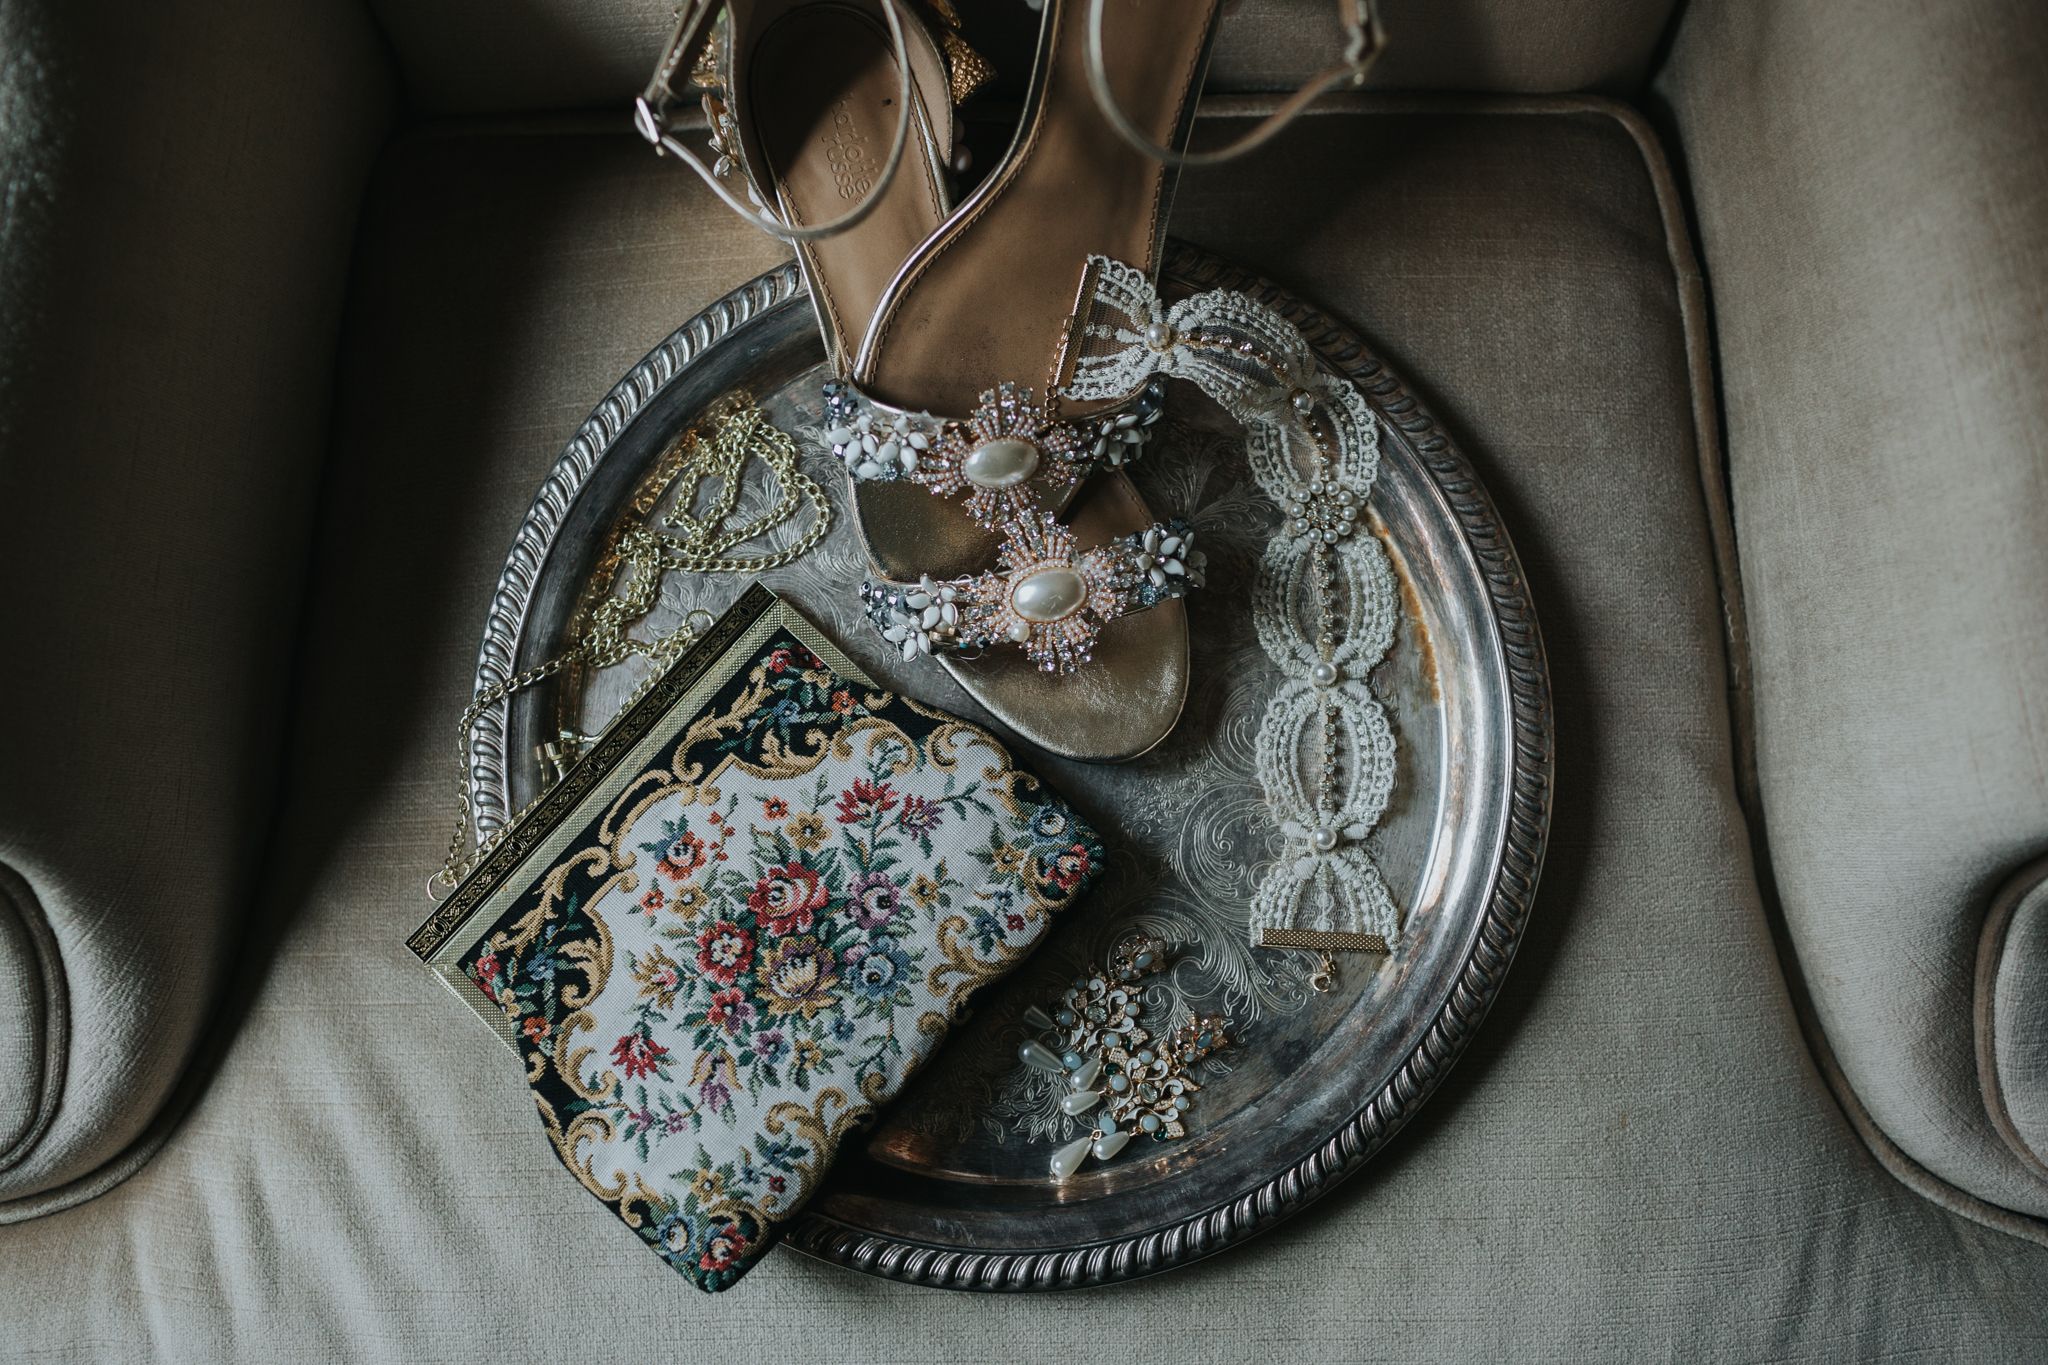 vintage wedding details on a silver tray.